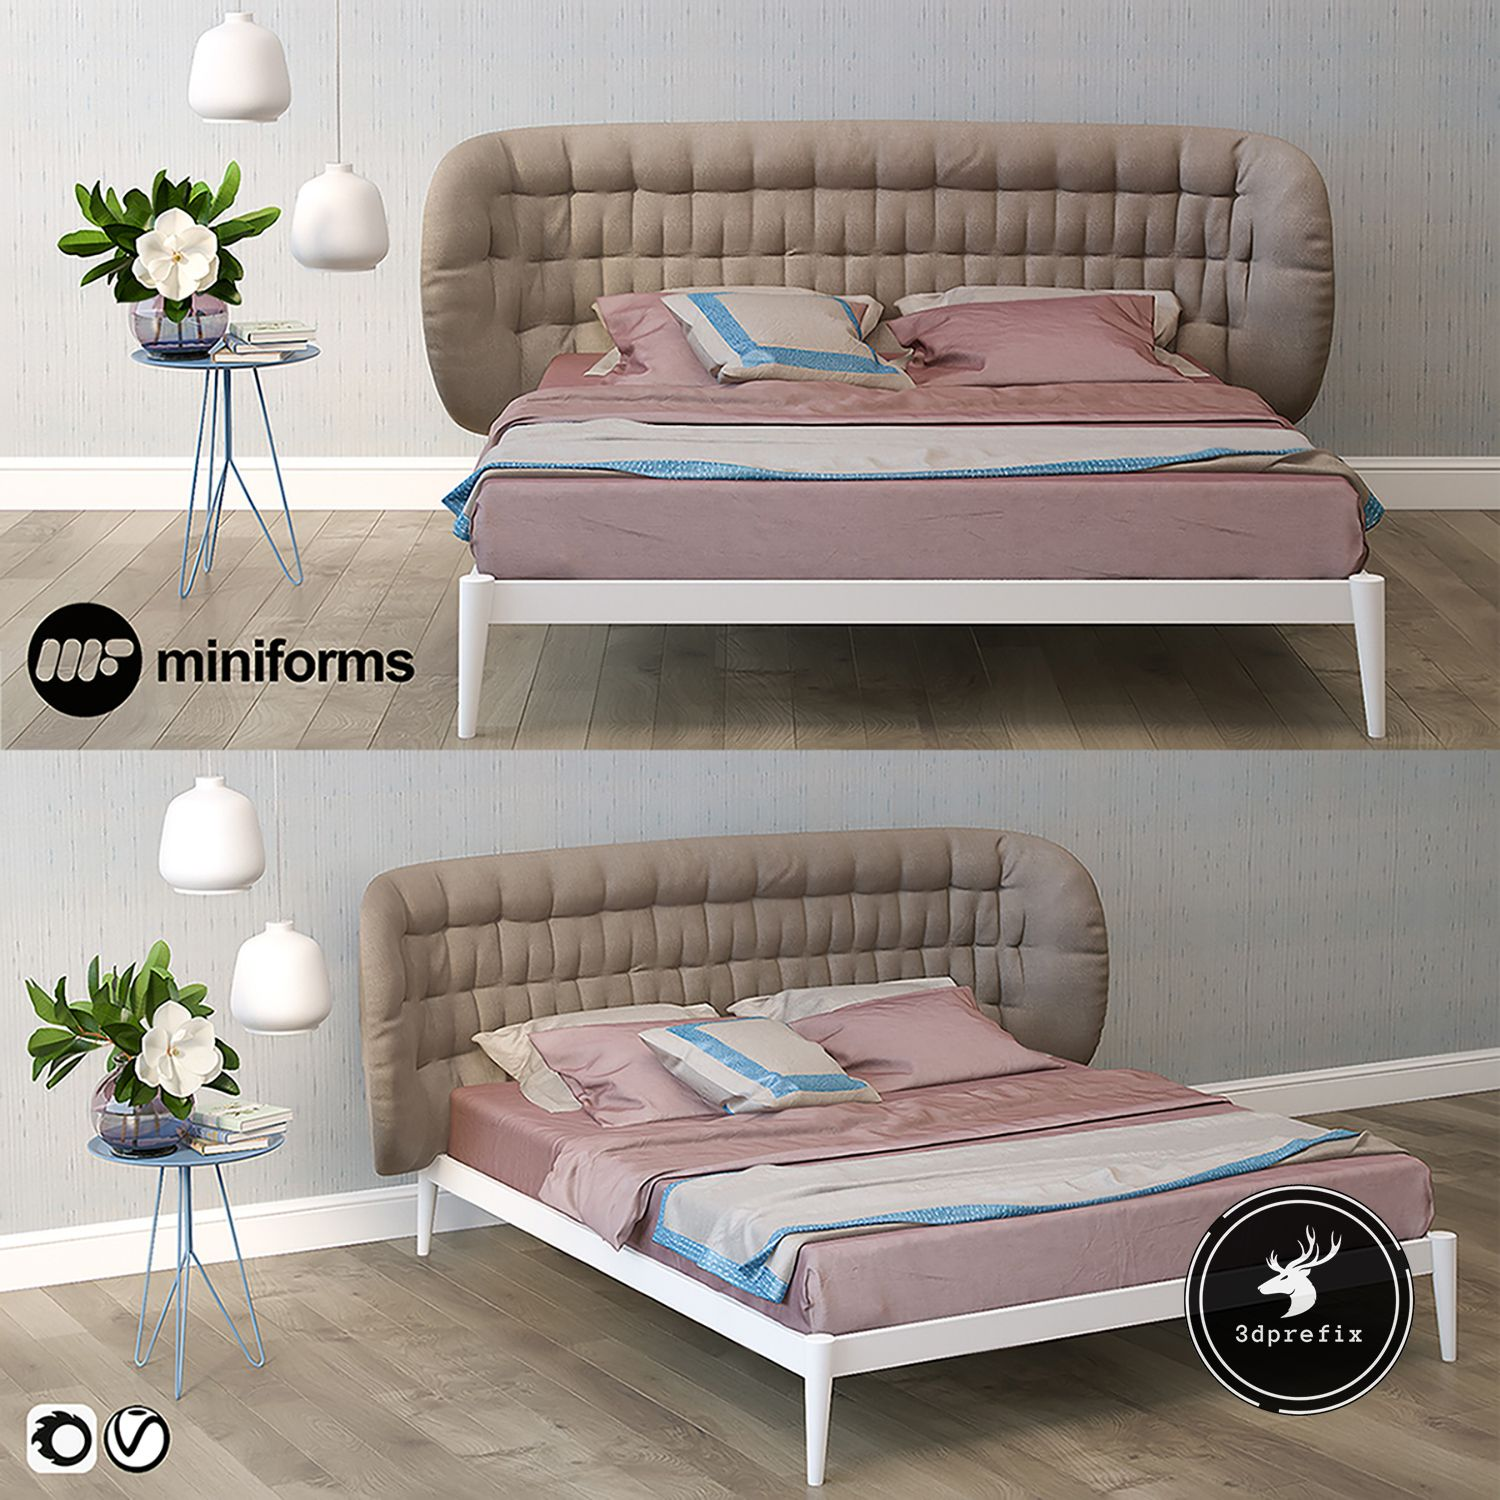 2551 Miniforms Bed Sketchup Model Free Download